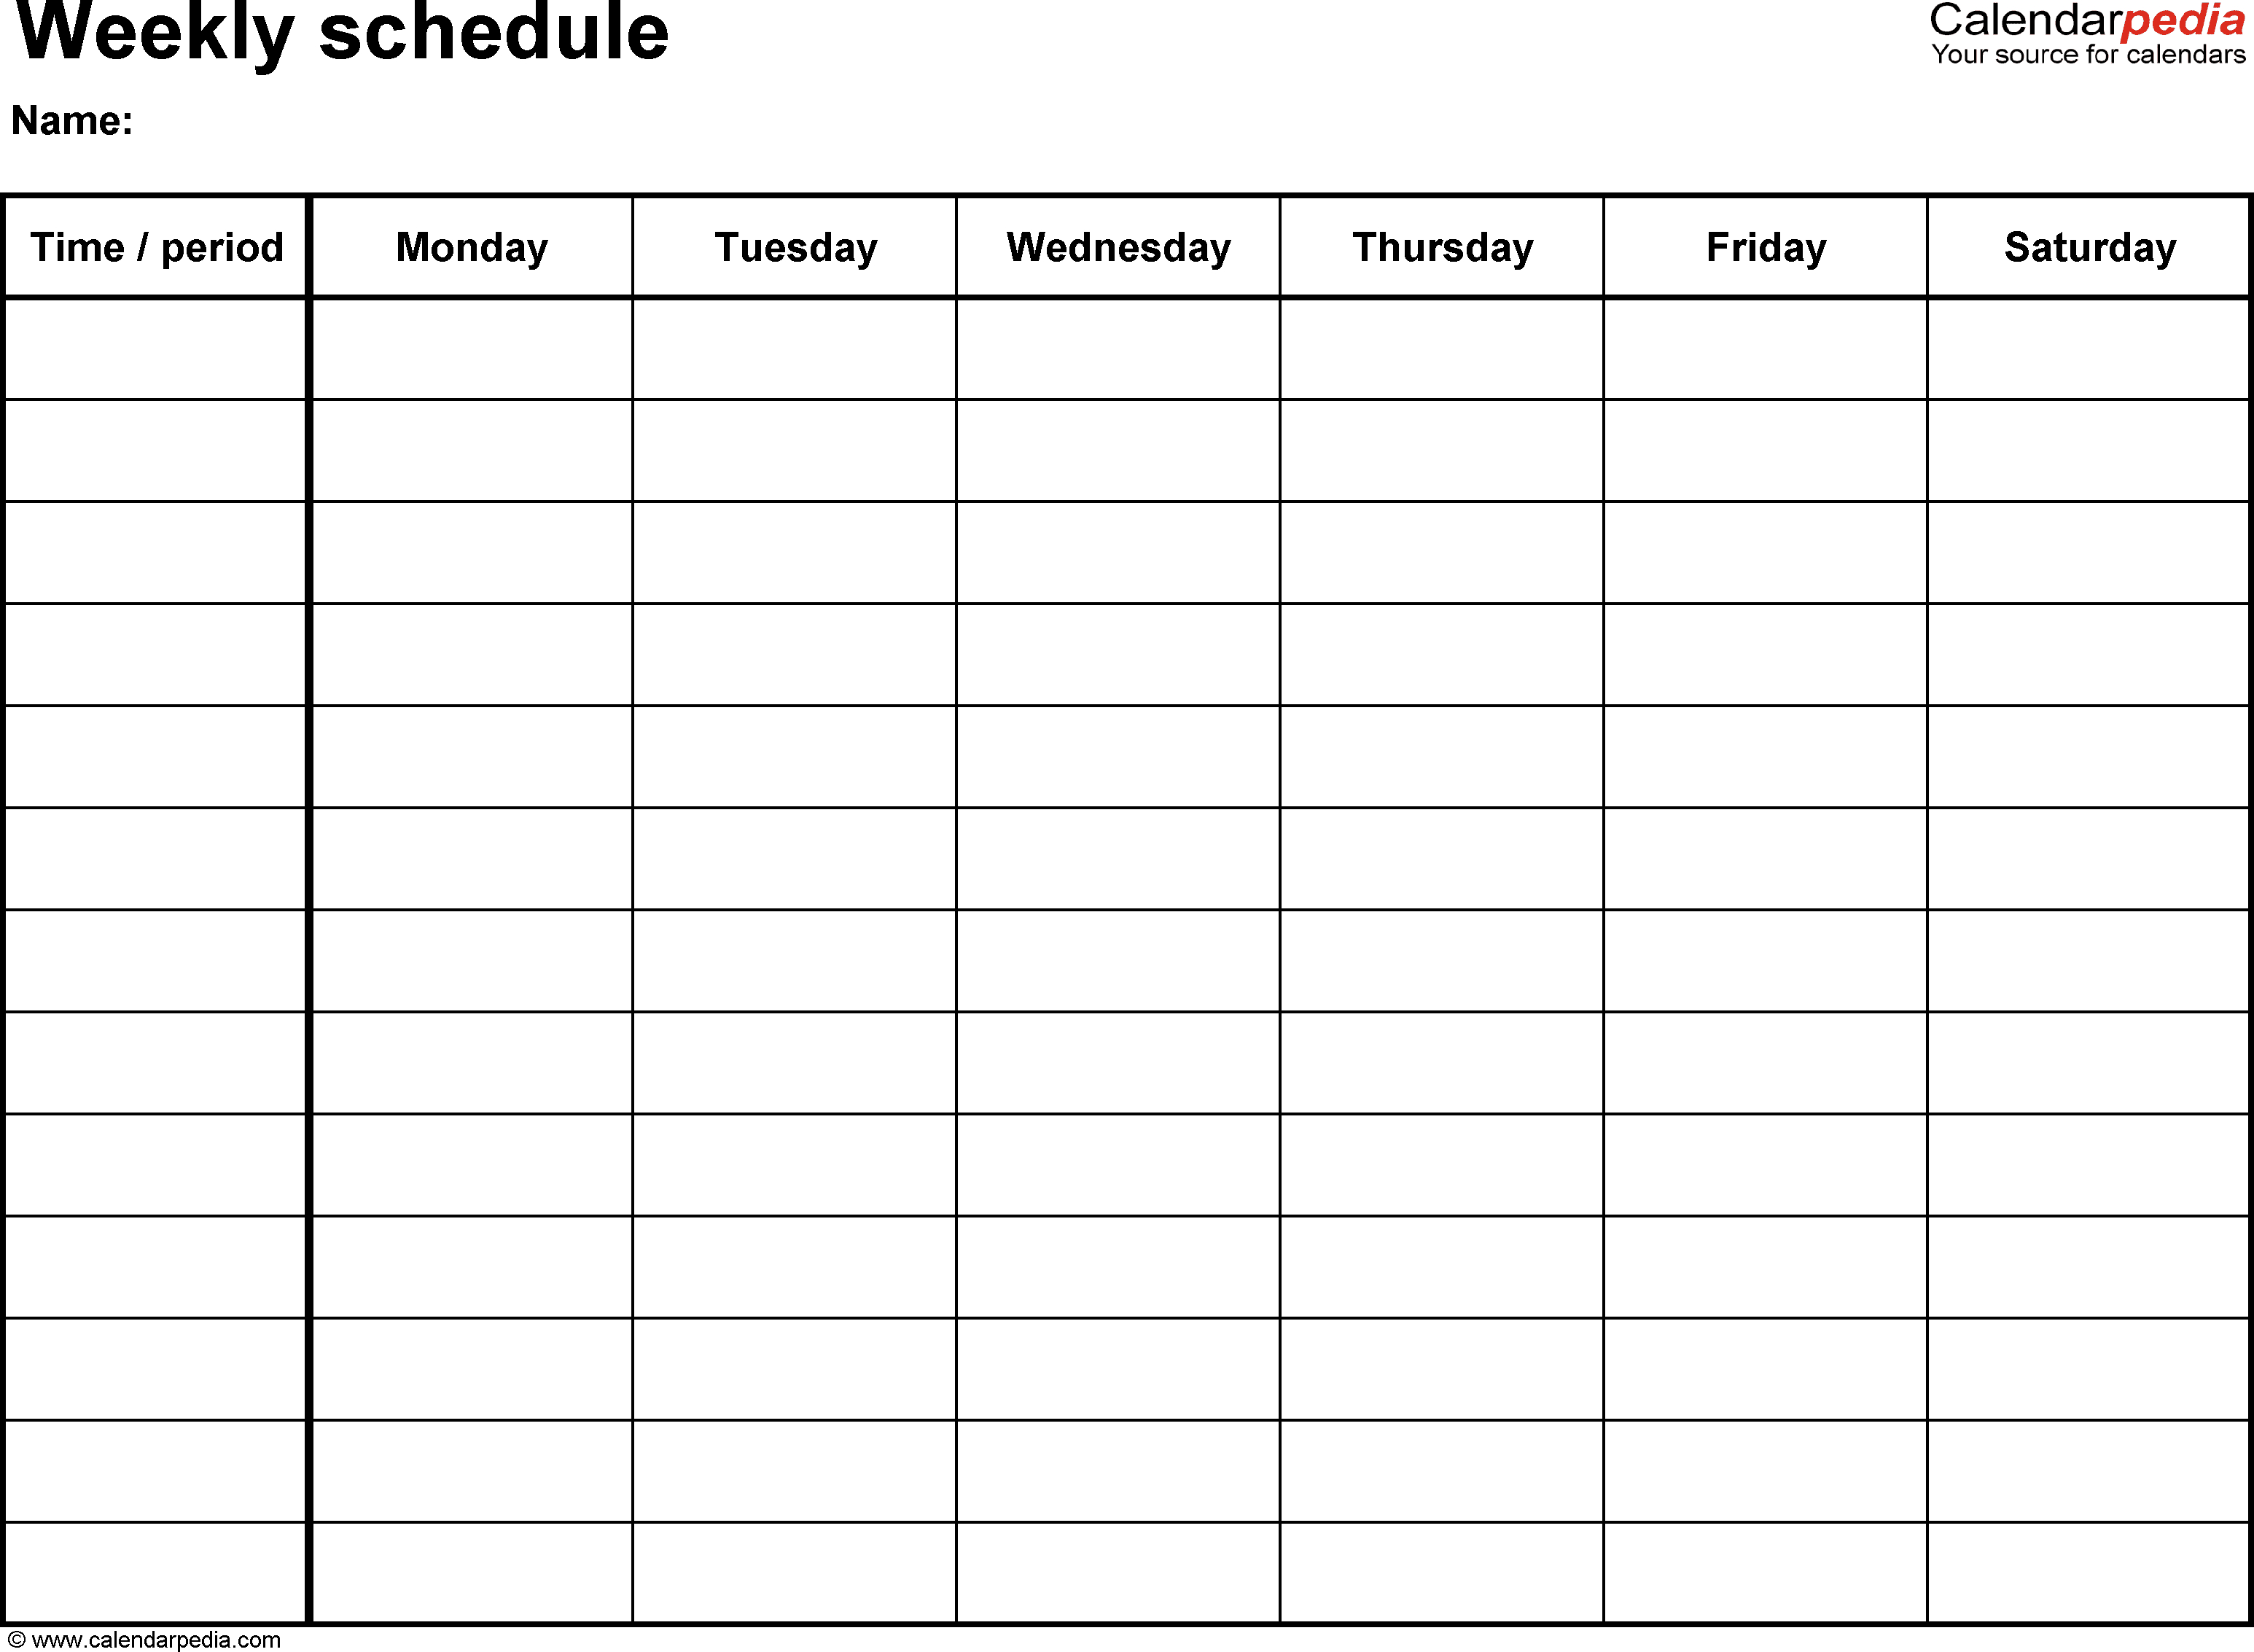 Free Weekly Schedule Templates For Word - 18 Templates for Summer Camp Schedule Template Blank